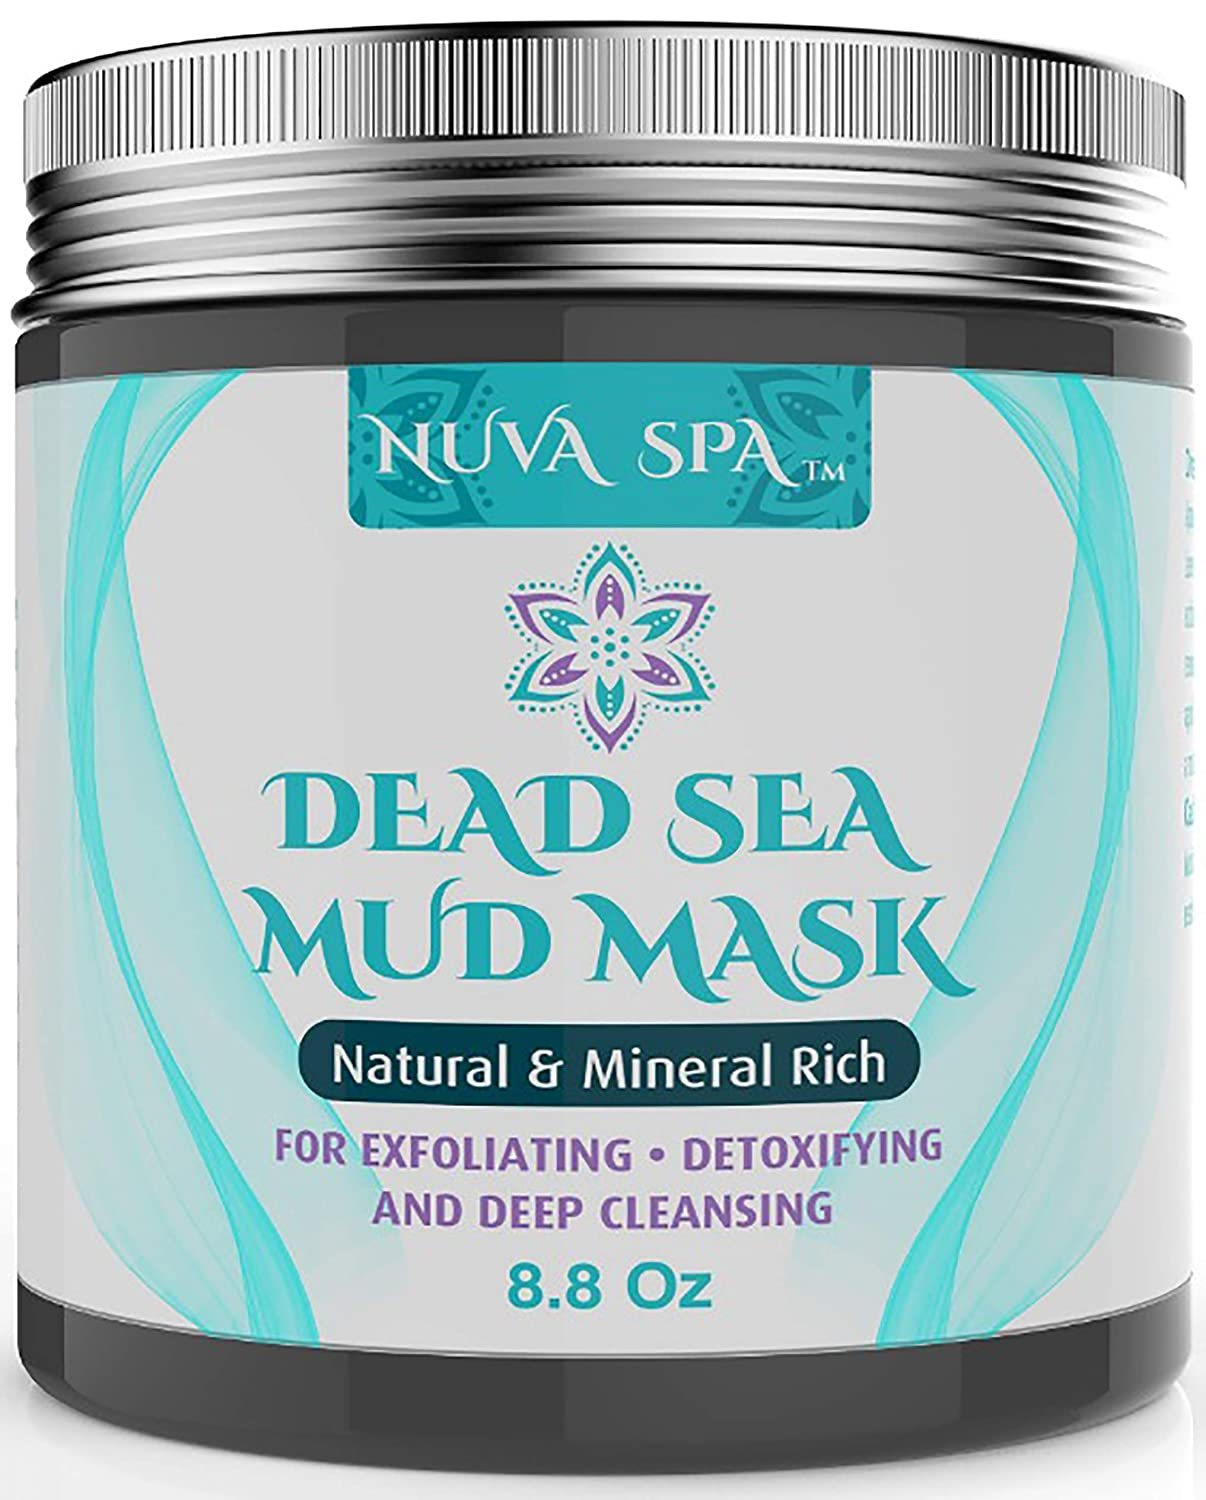 Dead Sea Mud Mask for Face, Acne, Oily Skin Blackheads – Best Facial Pore Minimizer, Reducer Pores Cleanser Treatment – Natural for Younger Looking Skin